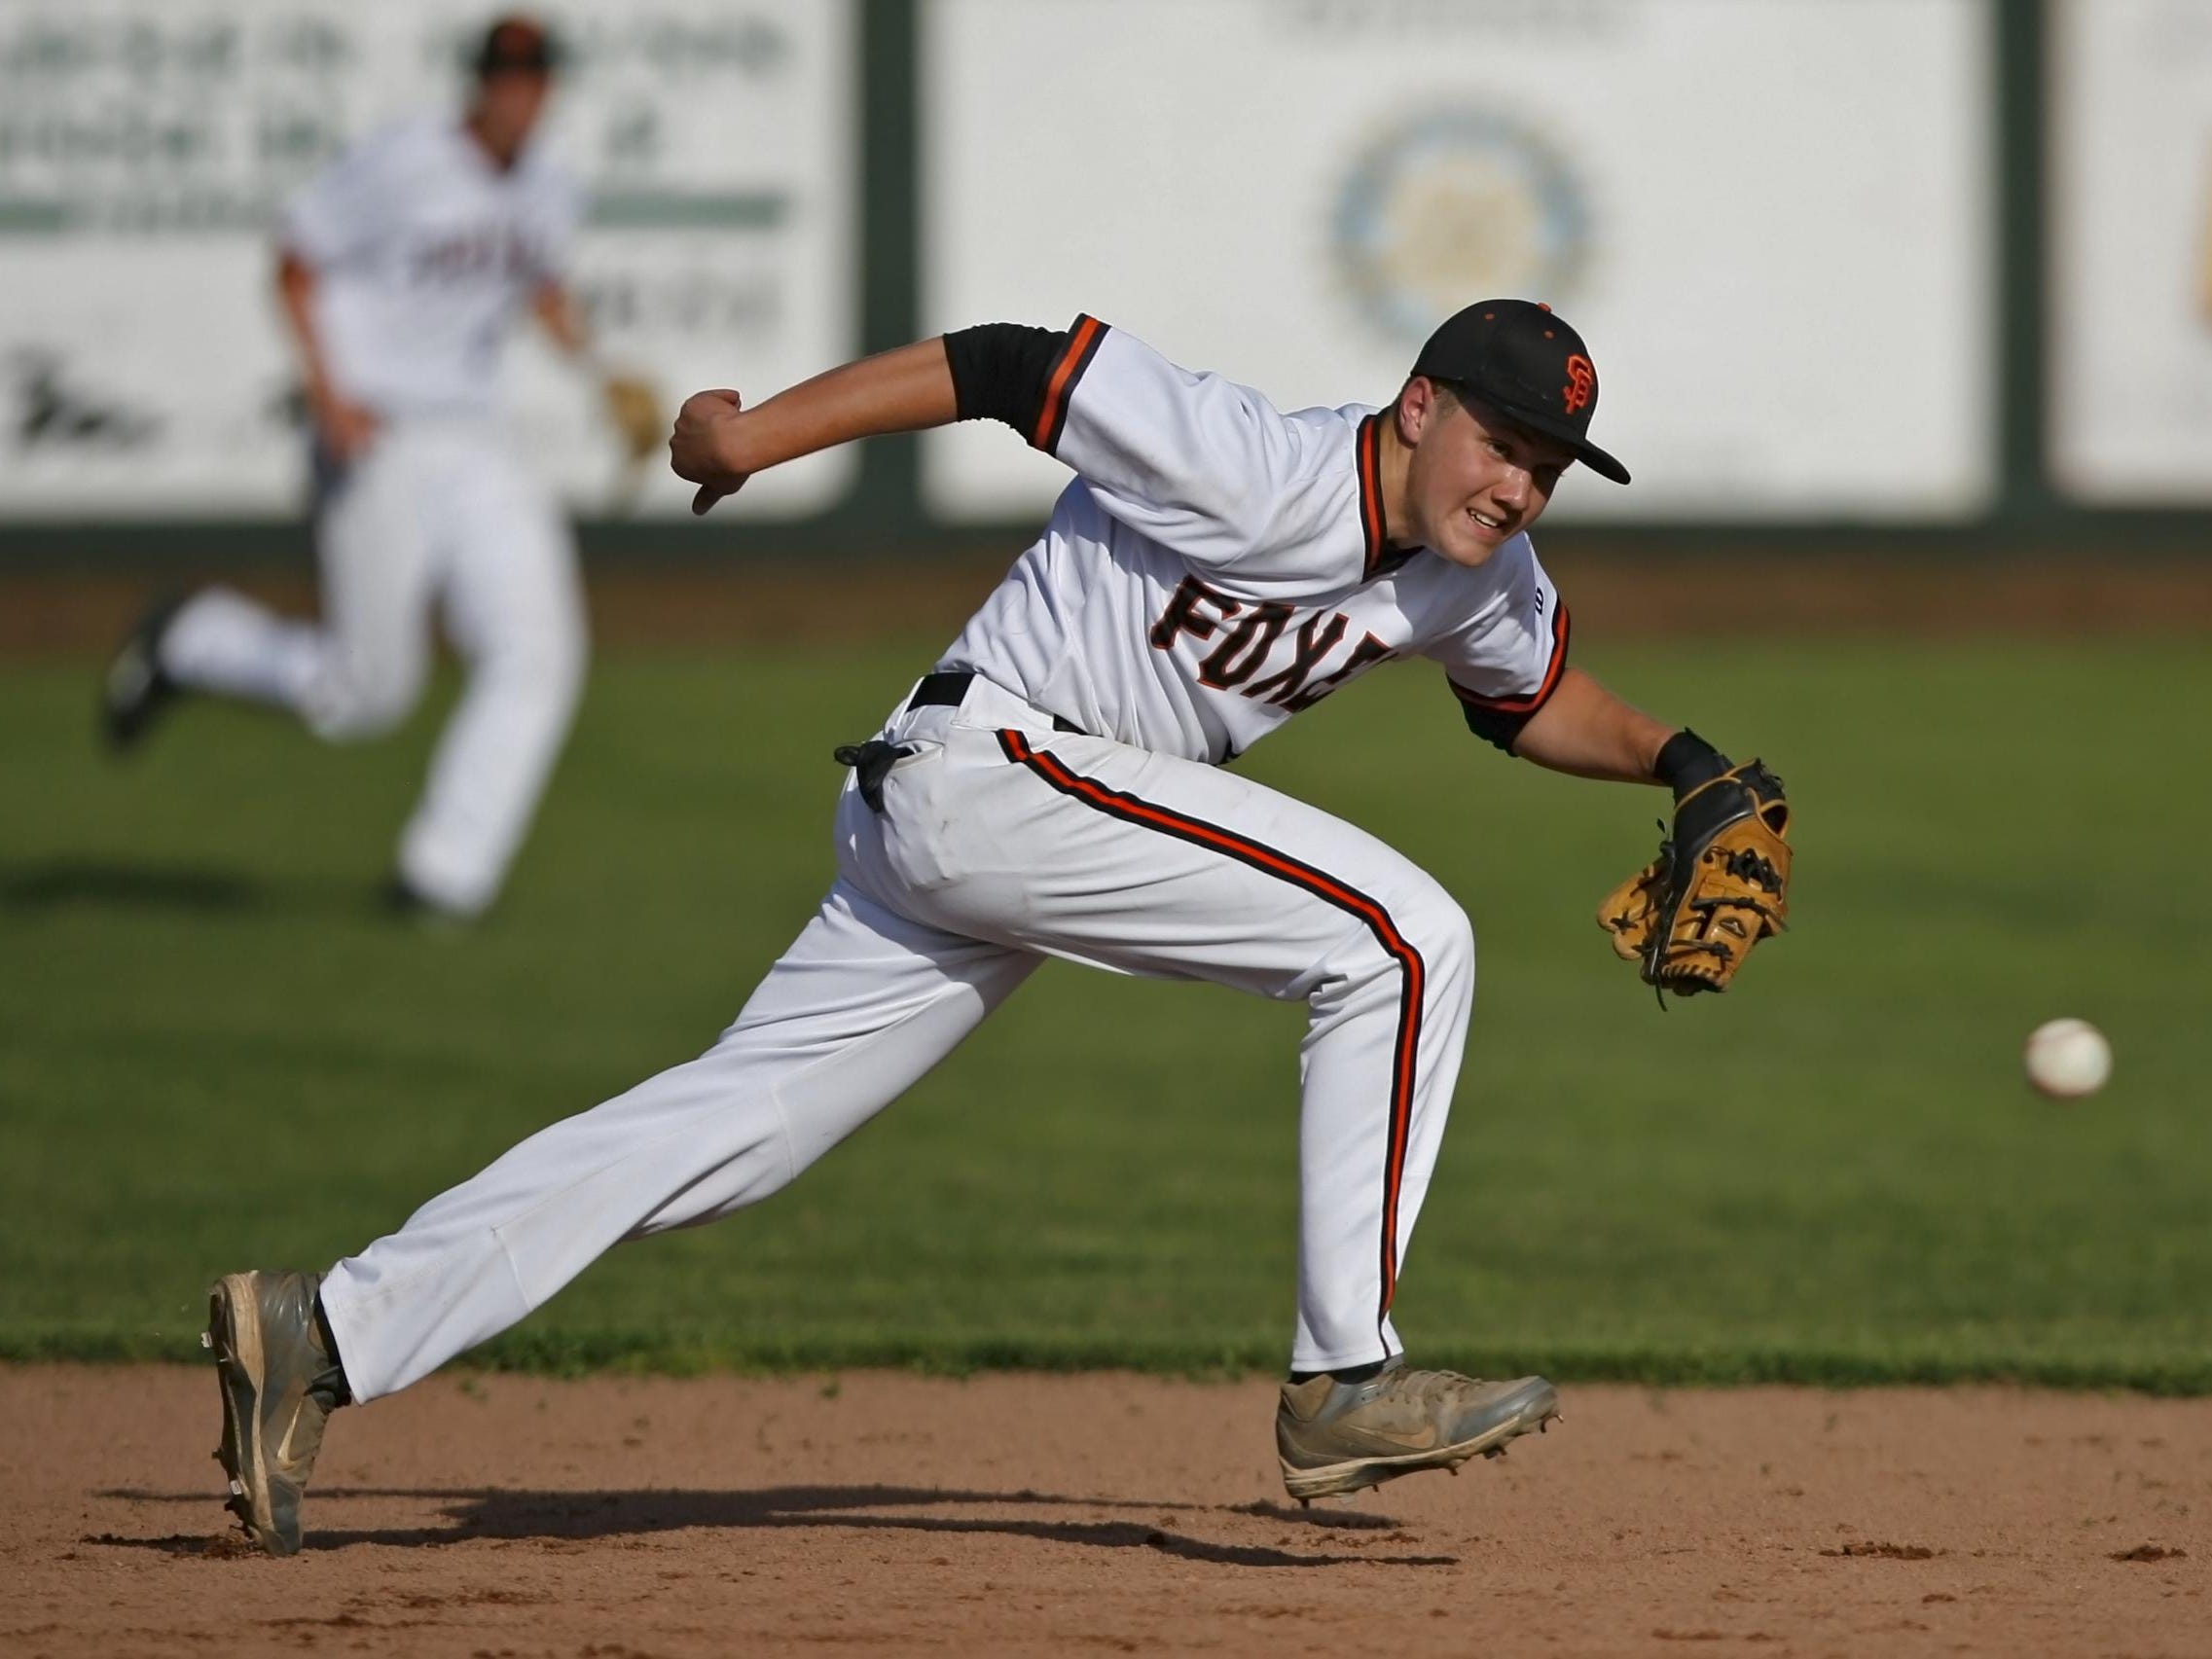 Silverton shortstop Grant Roth can't catch up with a ground ball up the middle in the top of the sixth inning of Silverton's 9-2 loss in a Mid-Willamette Conference baseball game, at Silverton, on Wednesday, Apr. 30, 2914.